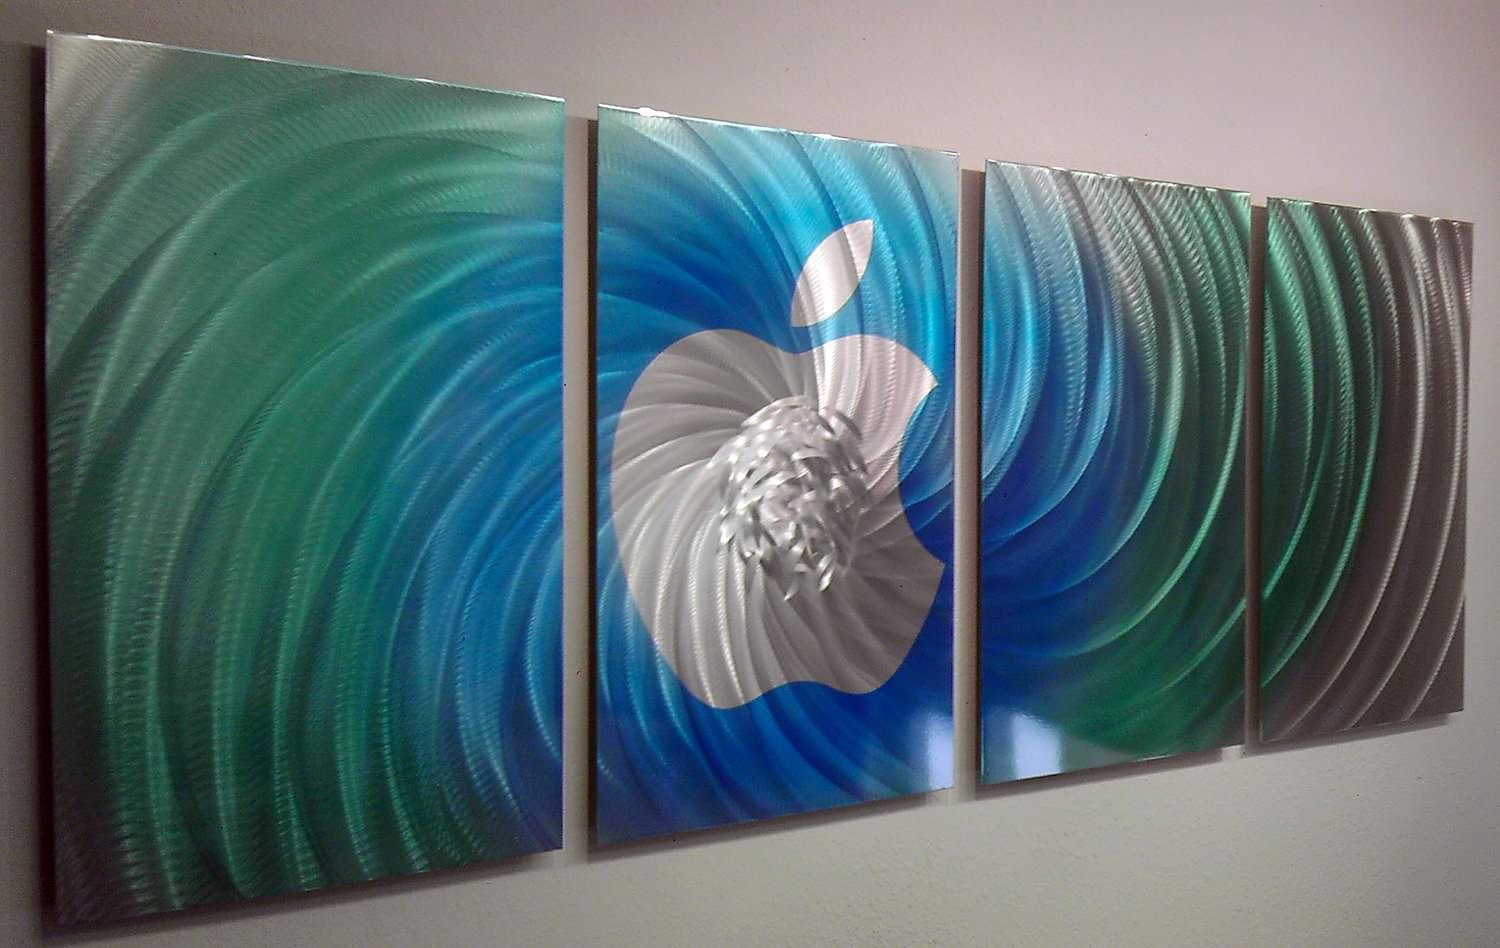 Mind Blowing Handmade Metal Wall Design